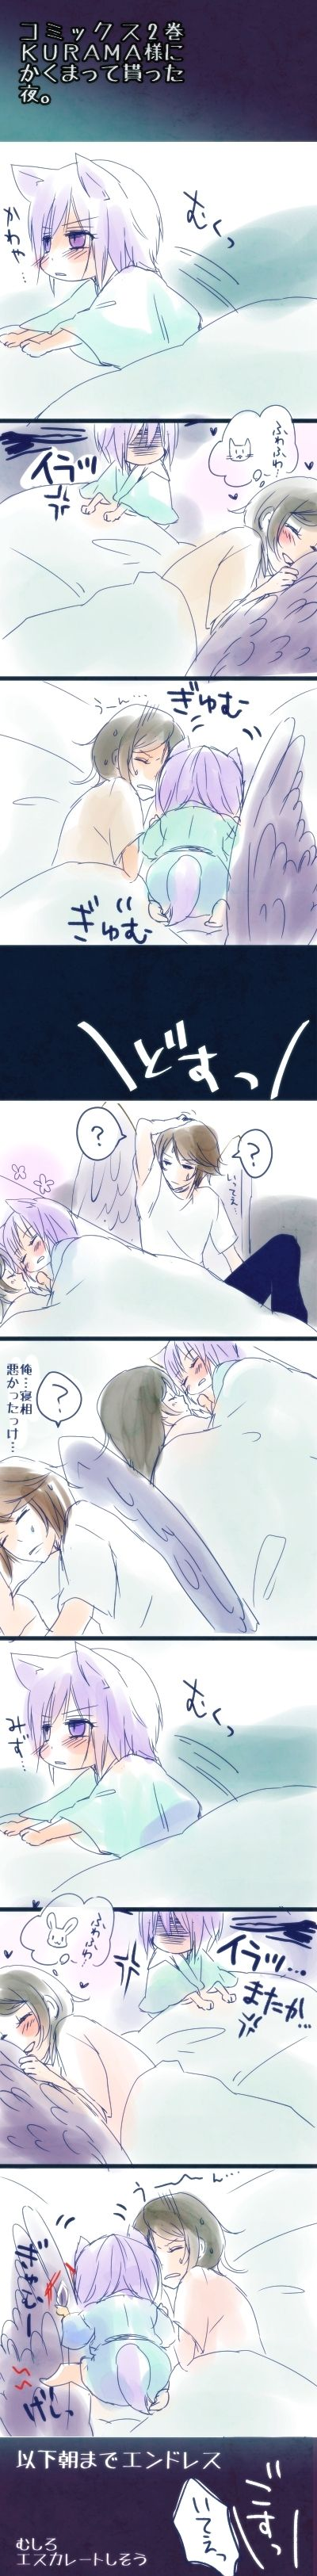 I don't understand what's written, but it looks so adorable!!! -- Anime, Kamisama Hajimemashita, Kamisama Kiss, fan art, comic, Tomoe and Nanami and Kurama, funny, fiction